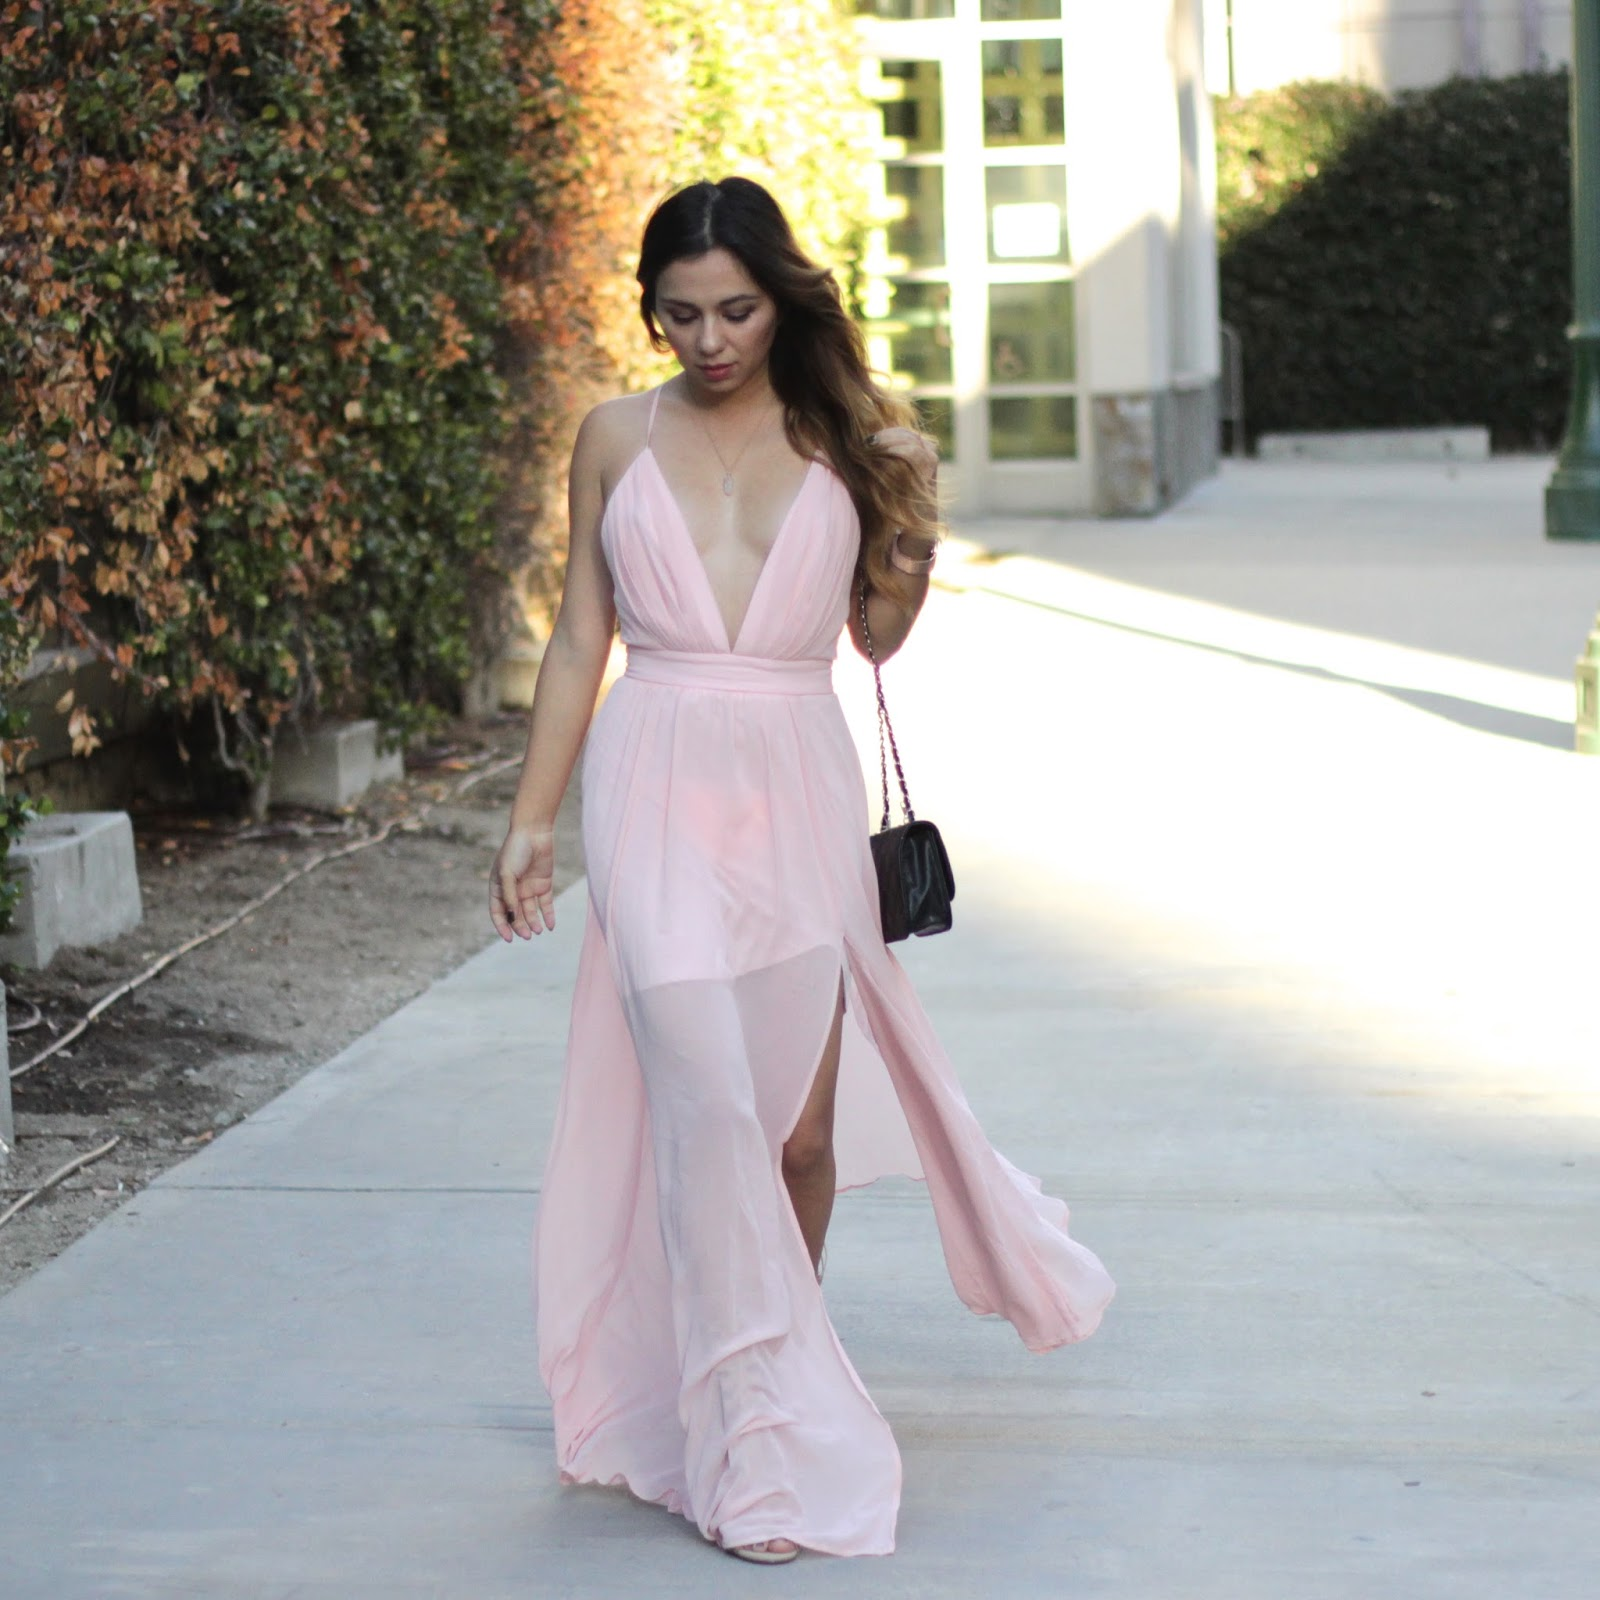 Fashion By Vicky Pink Dress From Hot Miami Styles